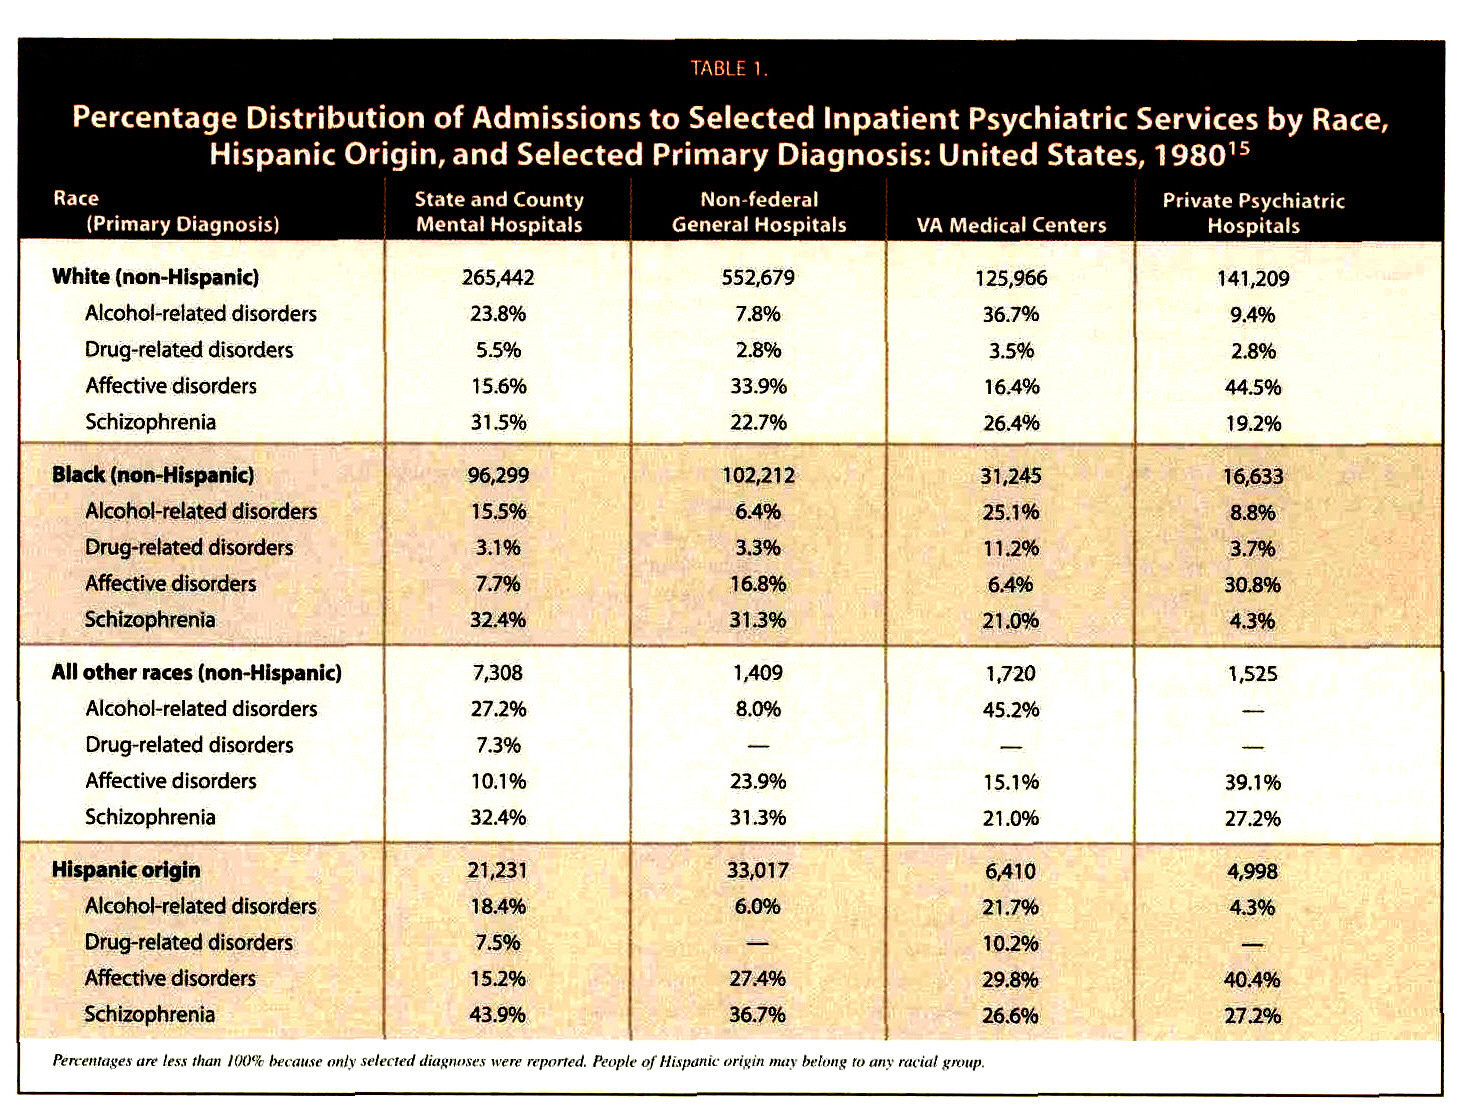 TABLE I.Percentage Distribution of Admissions to Selected Inpatient Psychiatric Services by Race, Hispanic Origin, and Selected Primary Diagnosis: United States, 198015